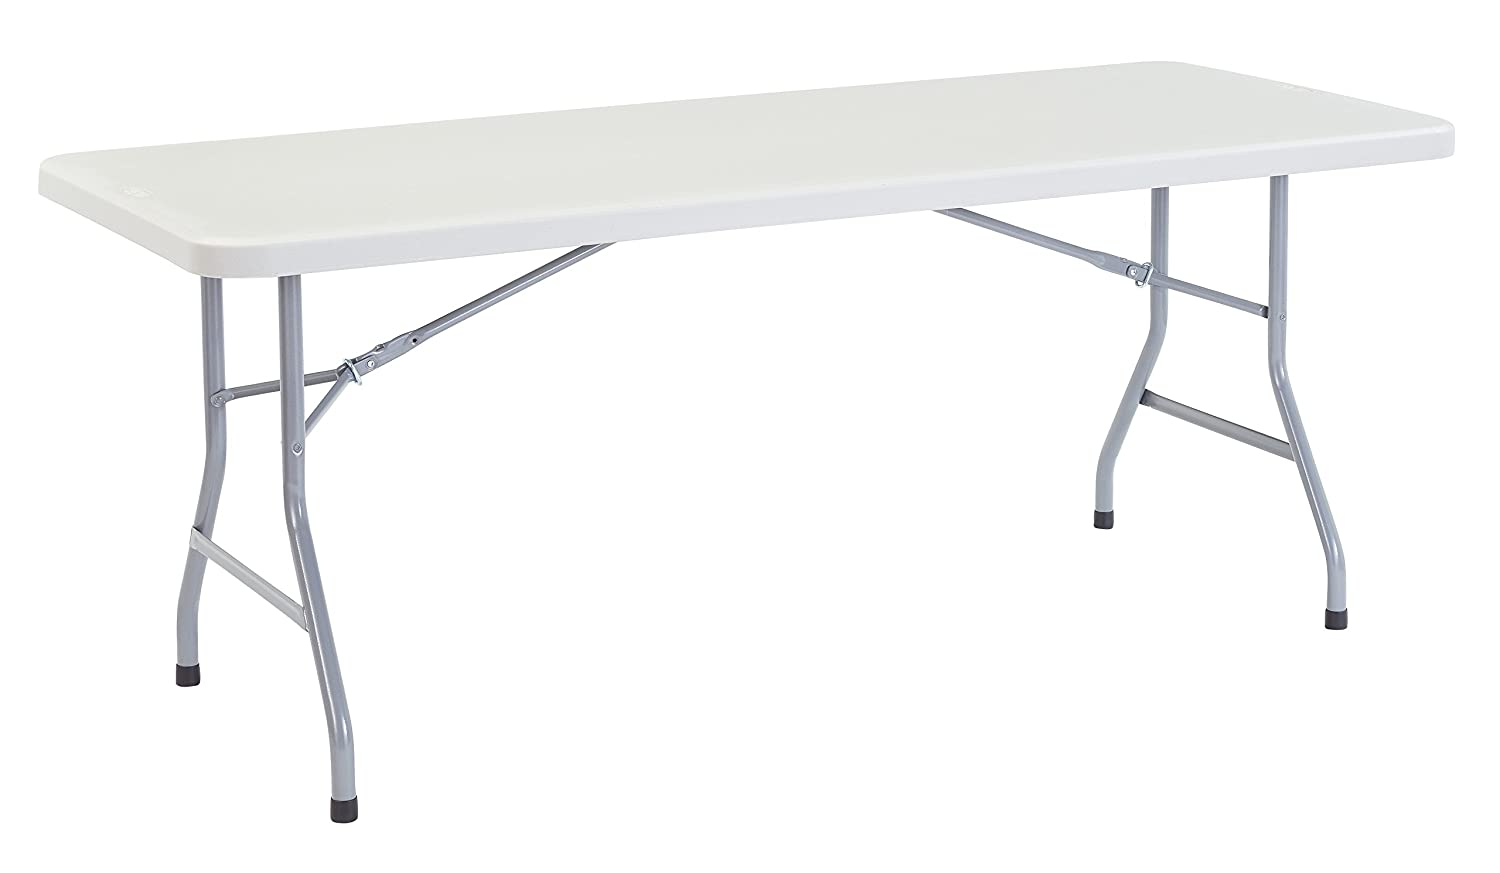 Top 10 Best Folding Table